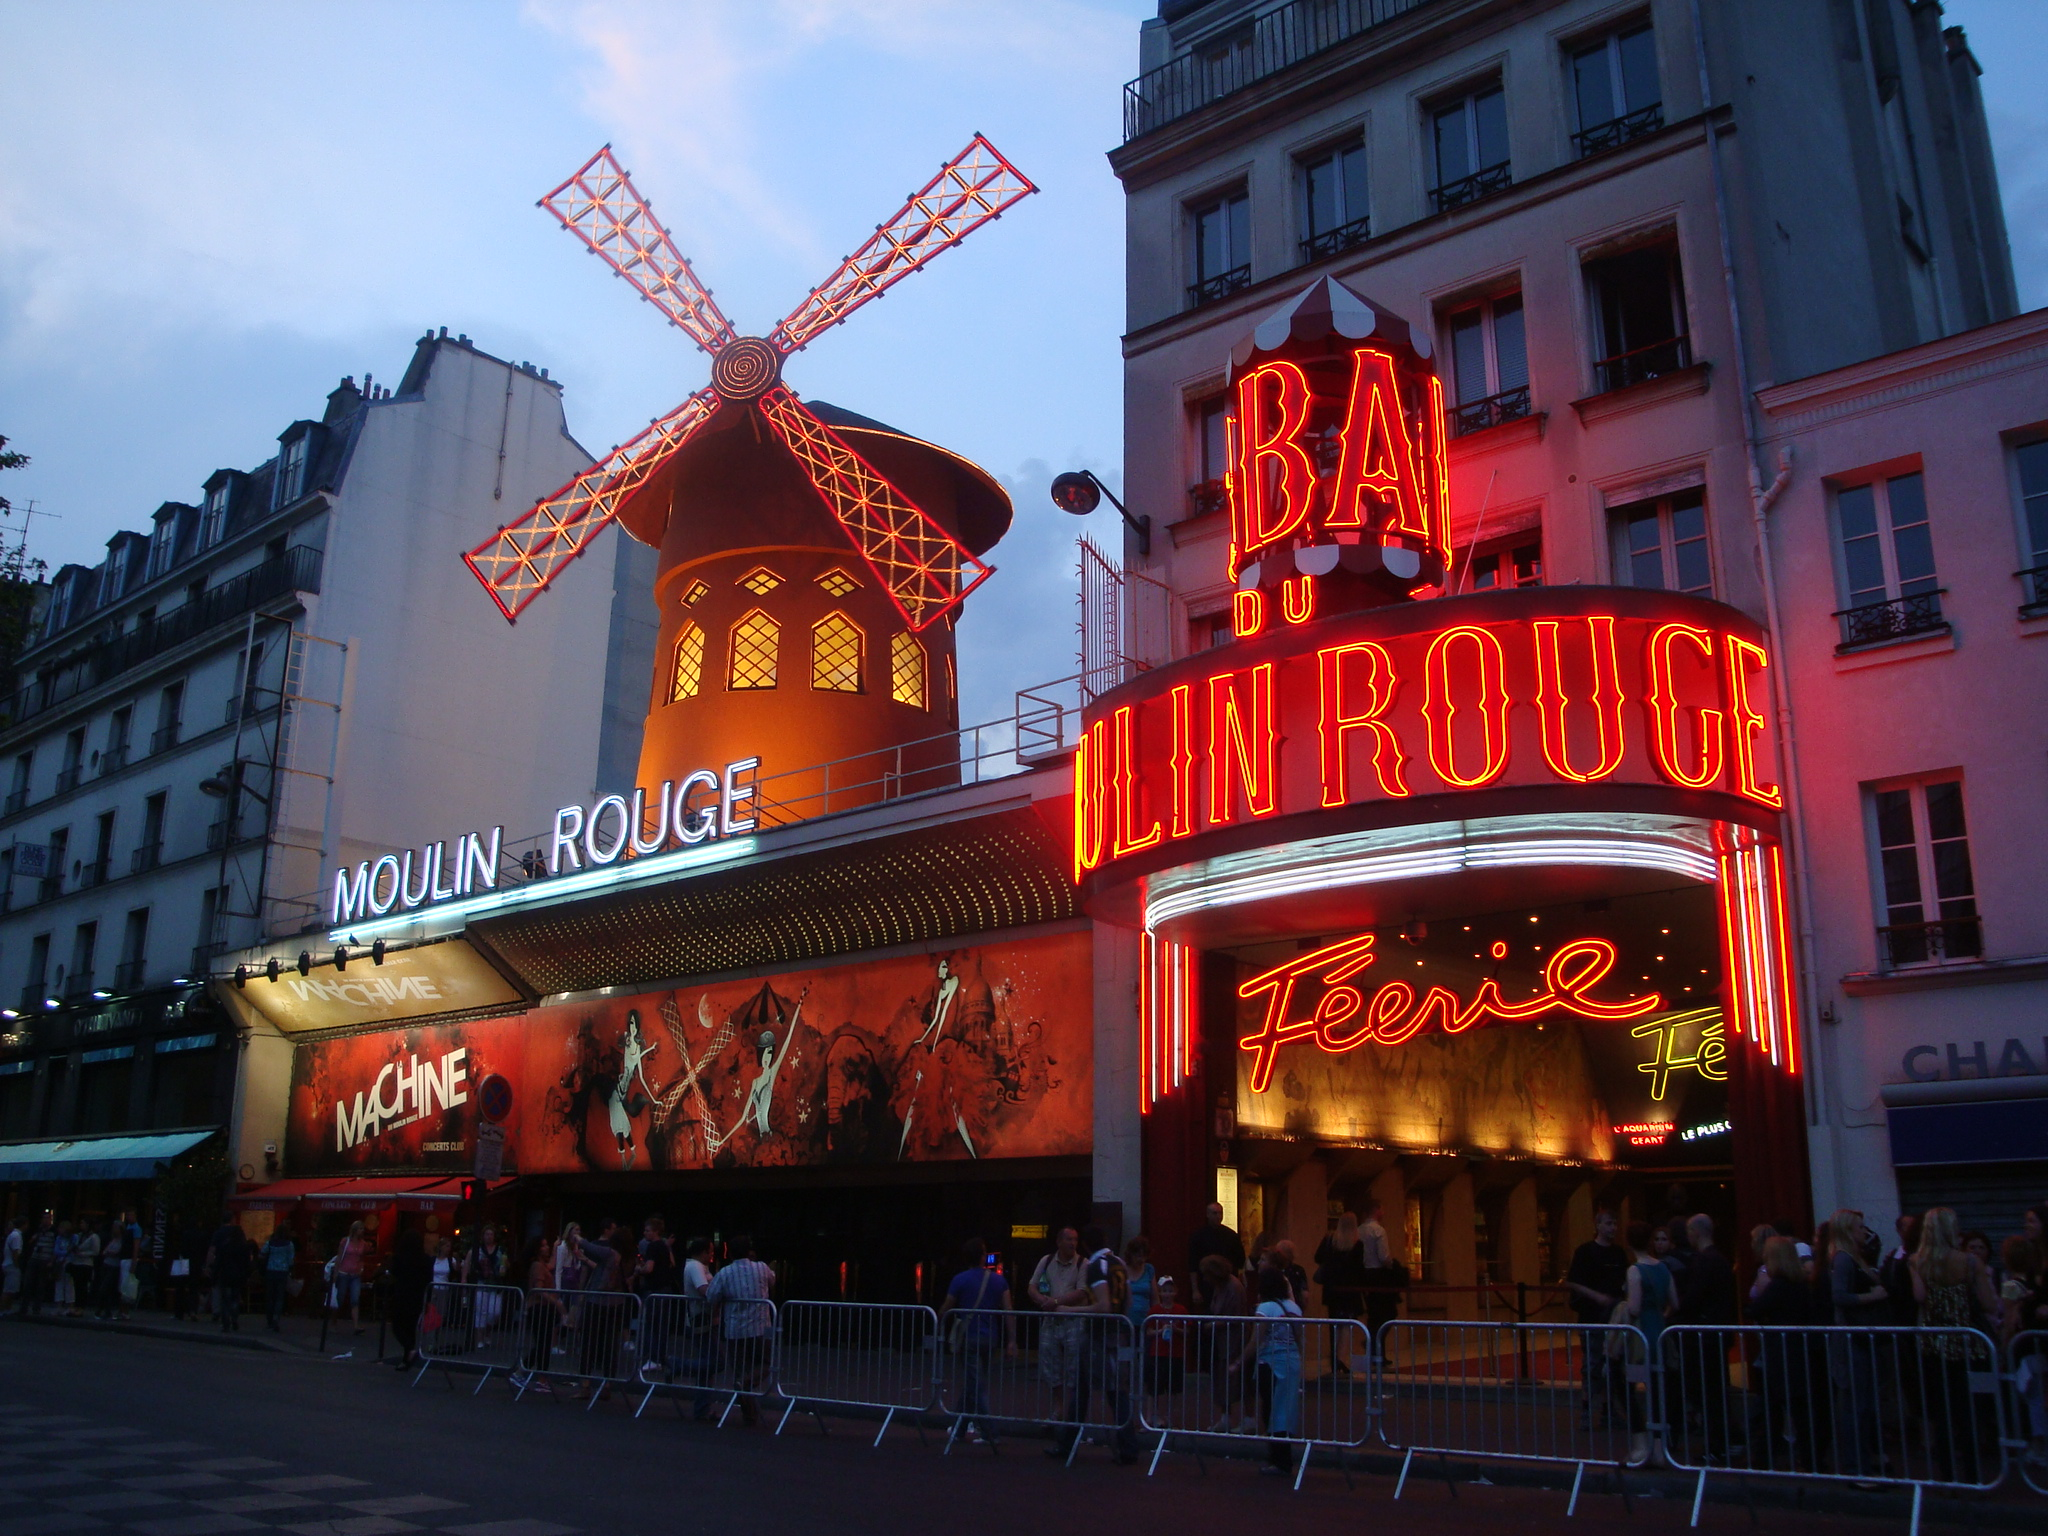 Paris 3-moulin rouge